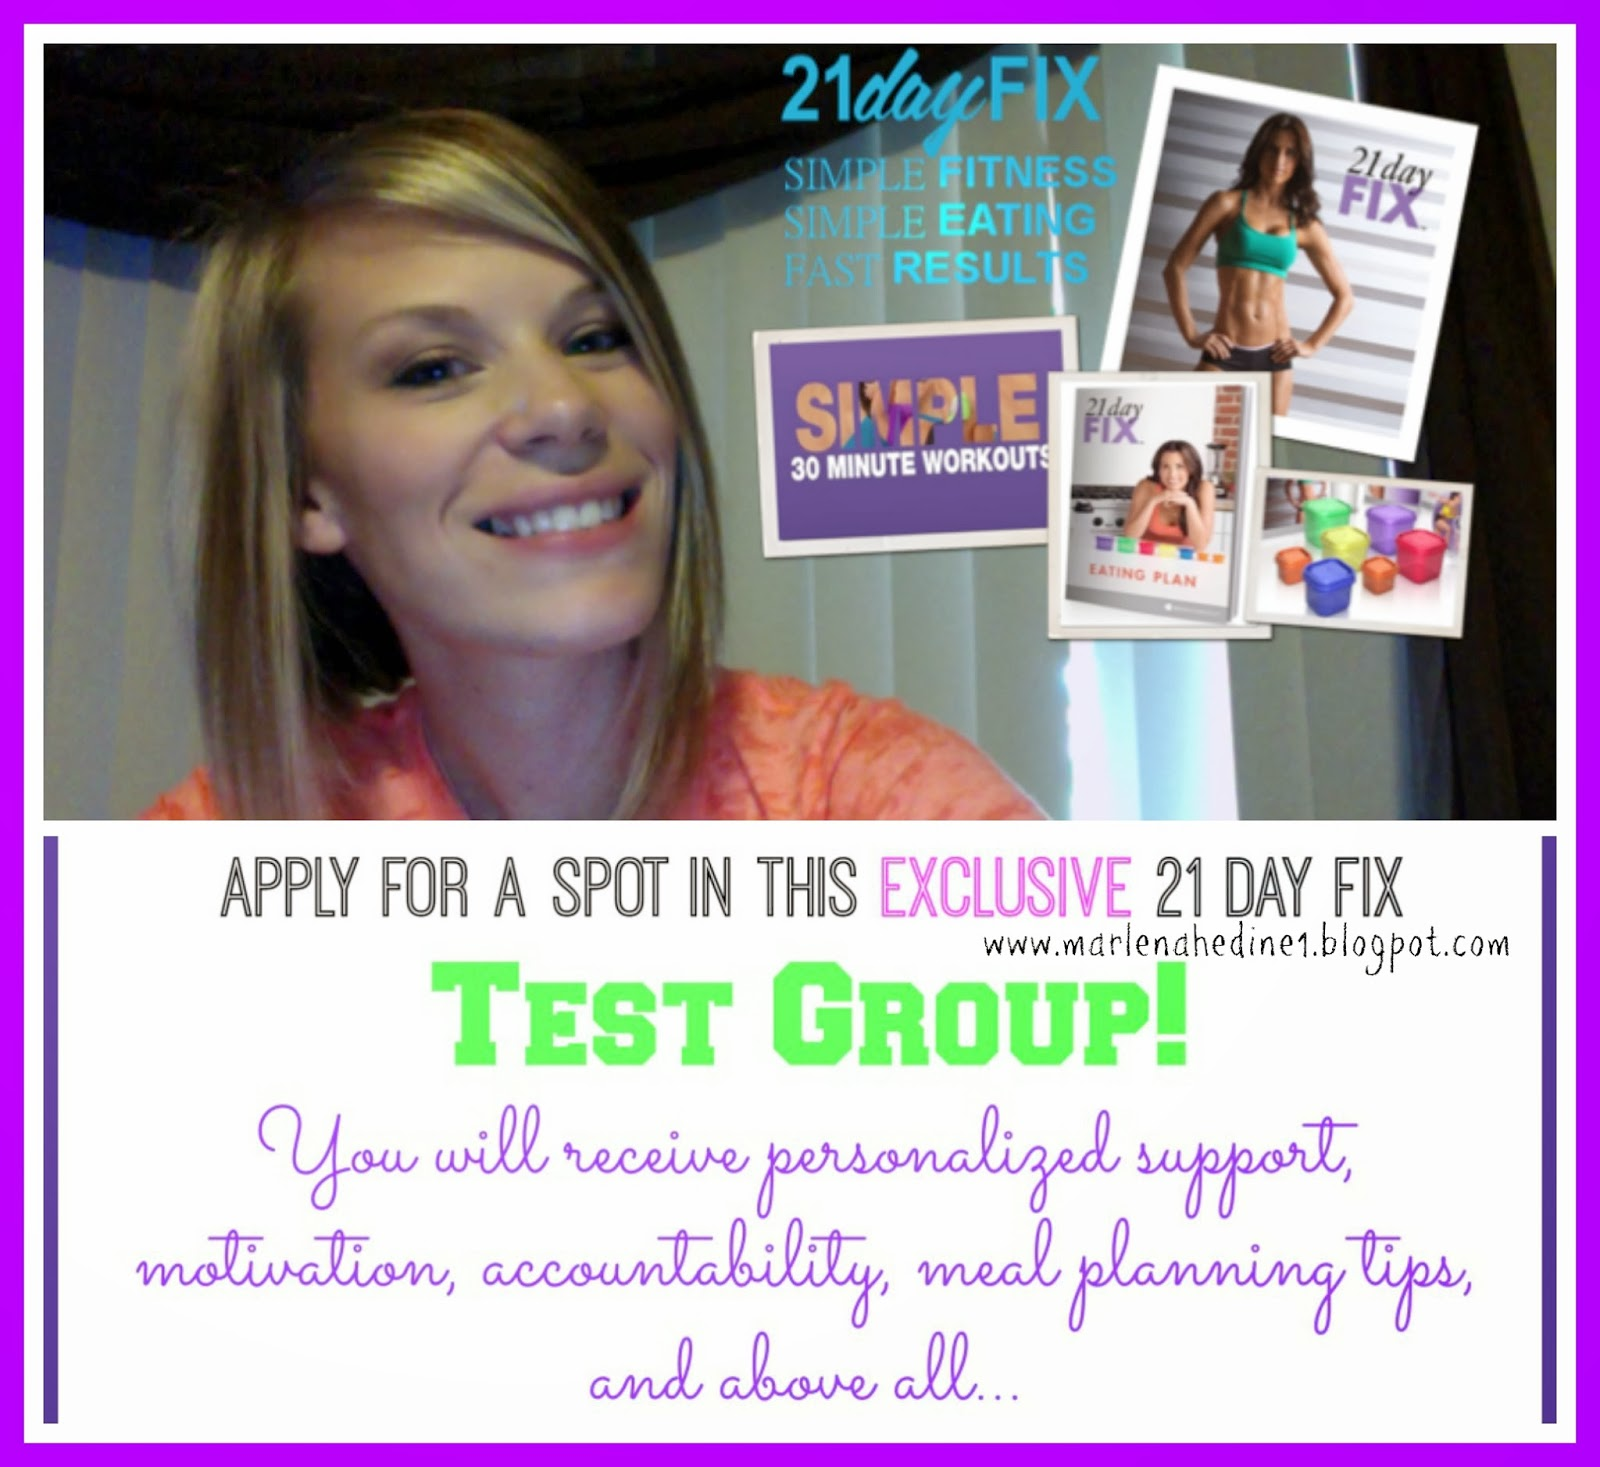 21 day fix test group, exclusive 21 day fix group, loose weight, portion control, loose weight quick, bikini body workout